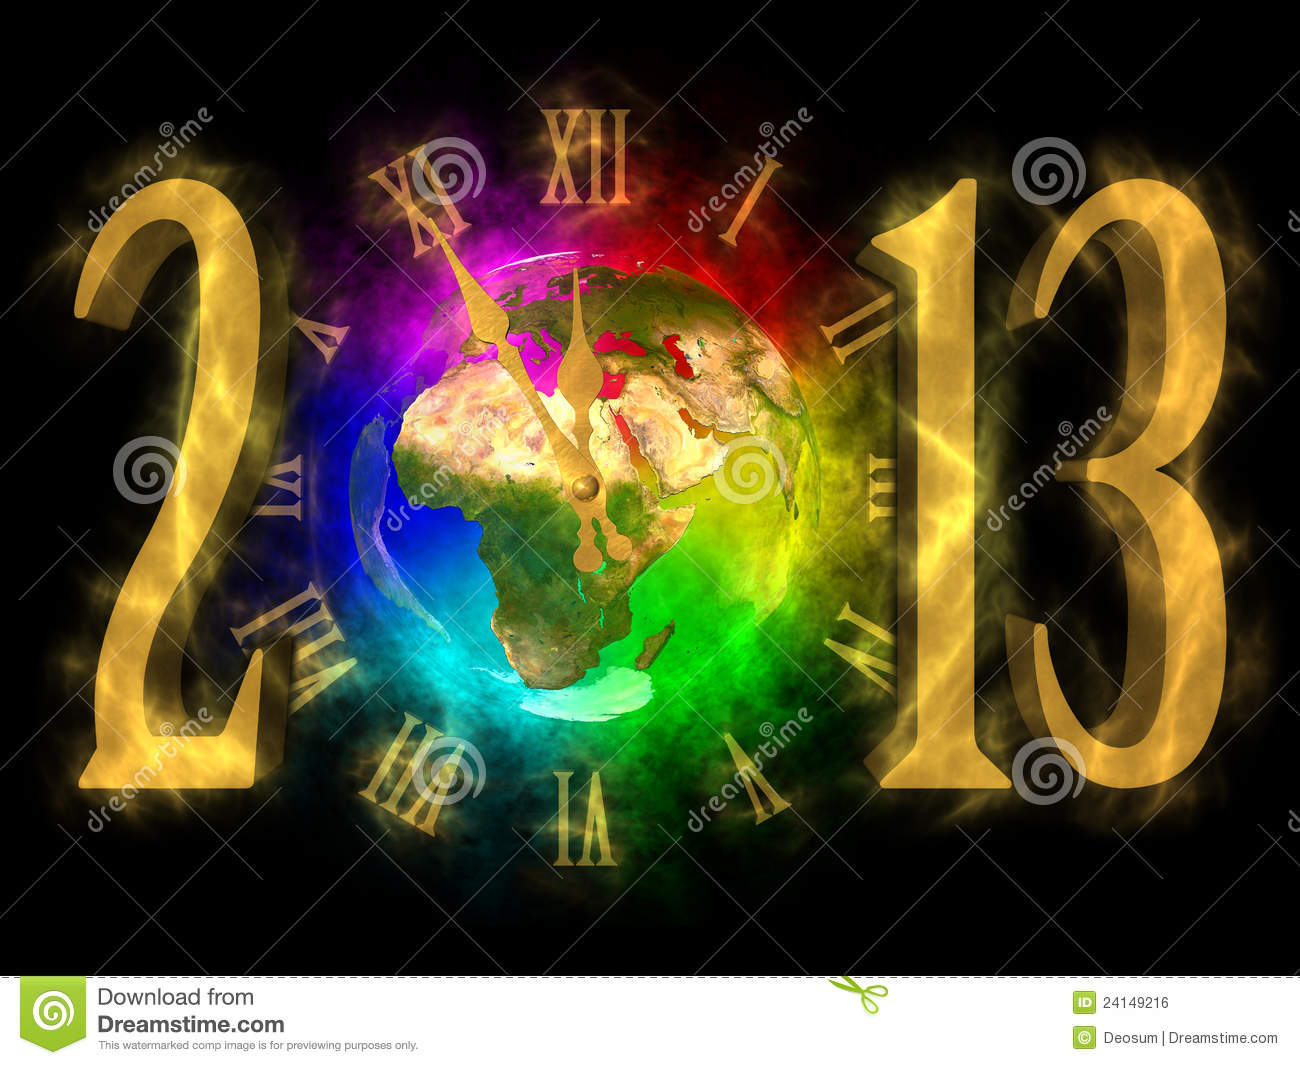 Happy new year 2013 europe africa asia royalty free stock image image 24149216 - Happy new year sound europe ...